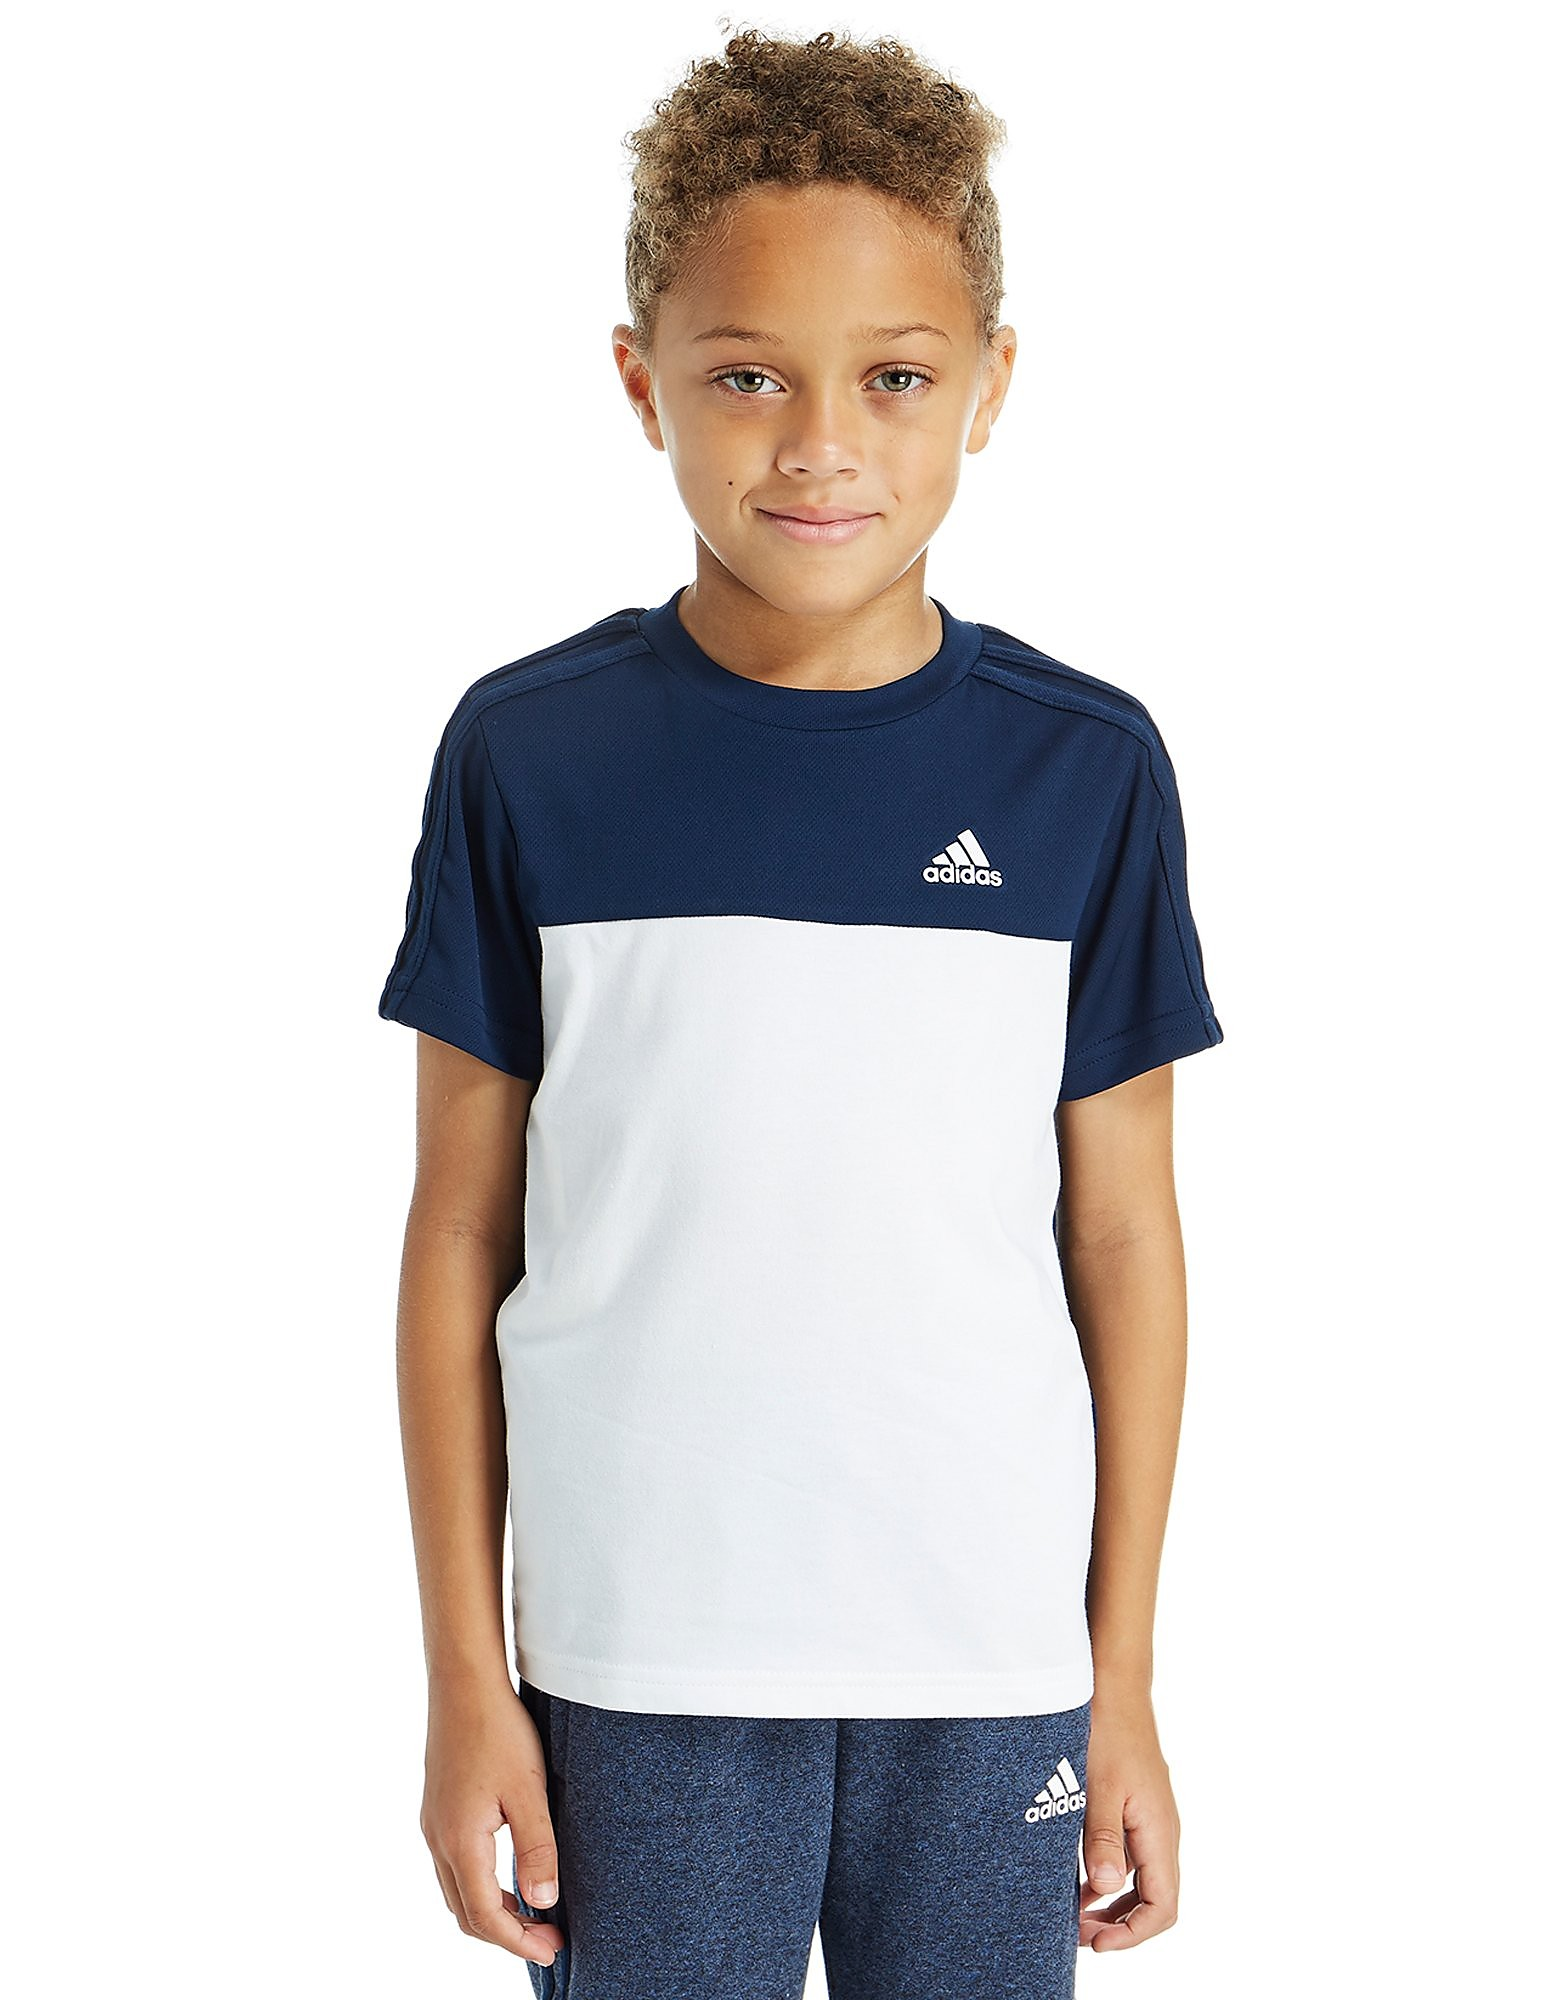 Image de adidas Hybird T-Shirt Enfant - Only at JD - White/Navy, White/Navy